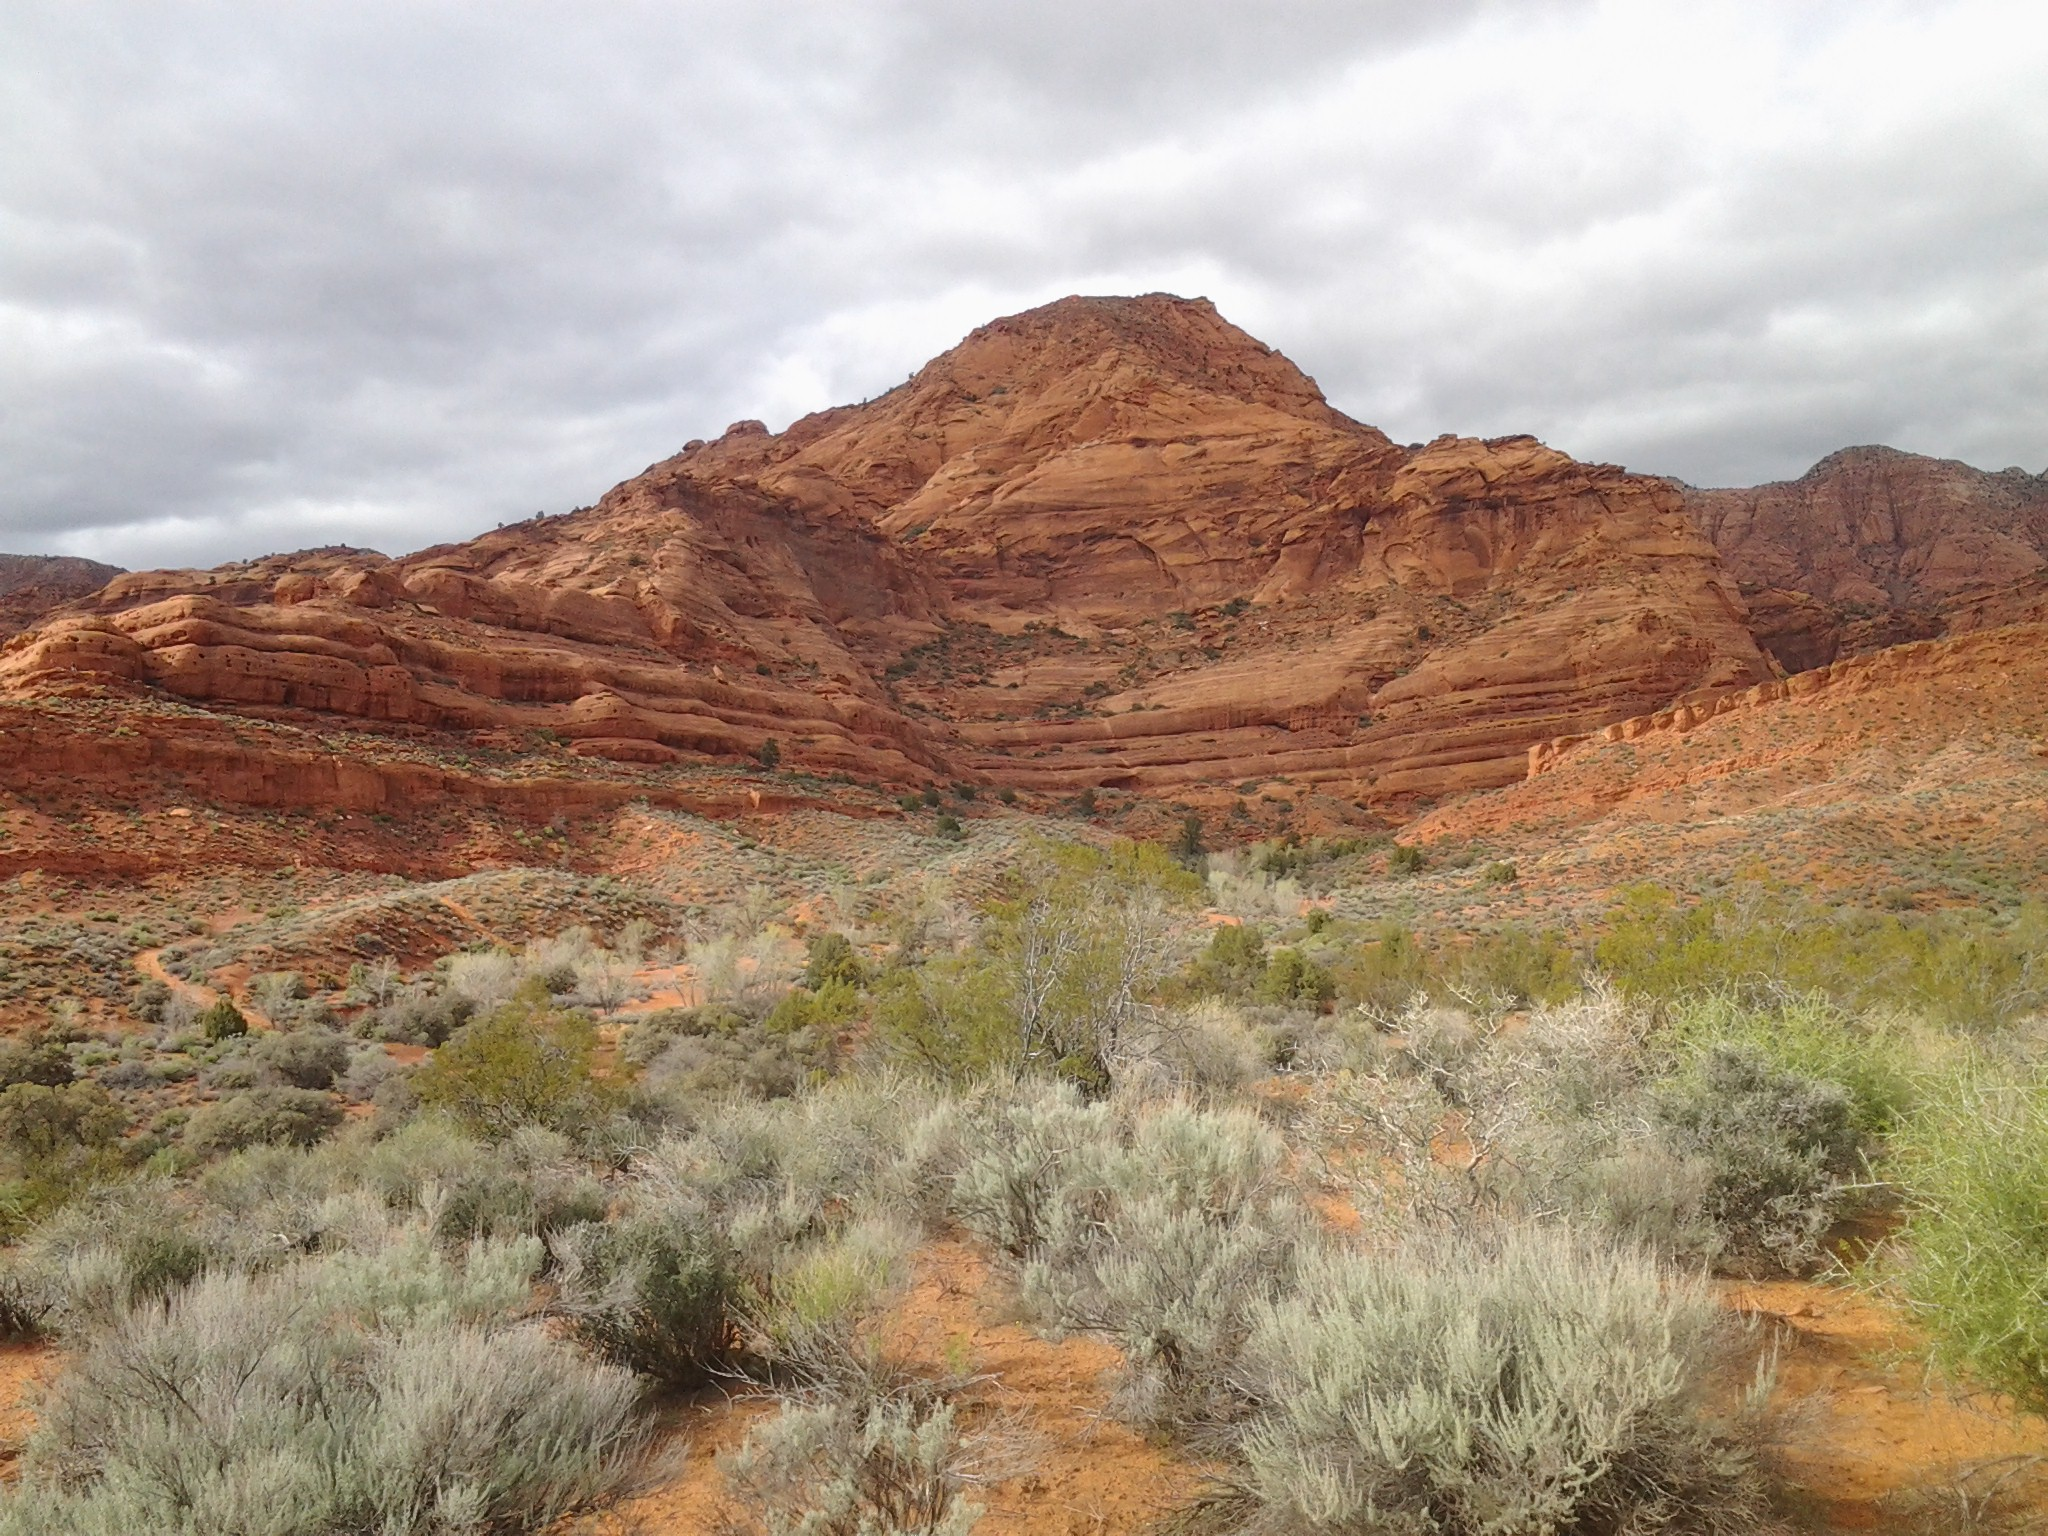 The scenic red rock vista seen along the Aztec Trail, Red Cliffs Desert Reserve near Harrisburg, Utah| photo by Reuben Wadsworth, St. George News